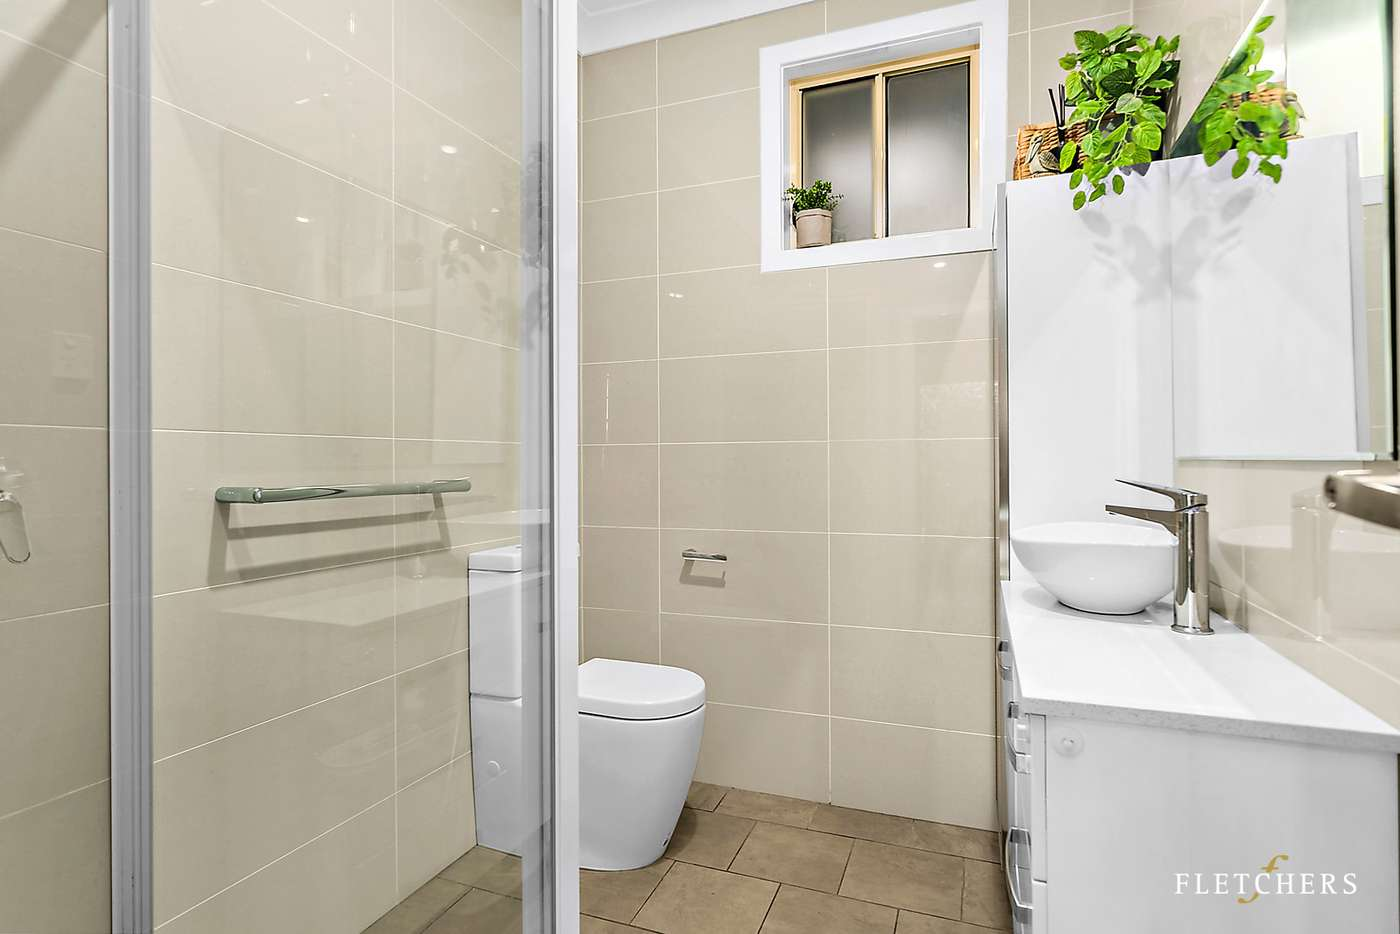 Sixth view of Homely house listing, 3 Marceau Street, Mount Saint Thomas NSW 2500